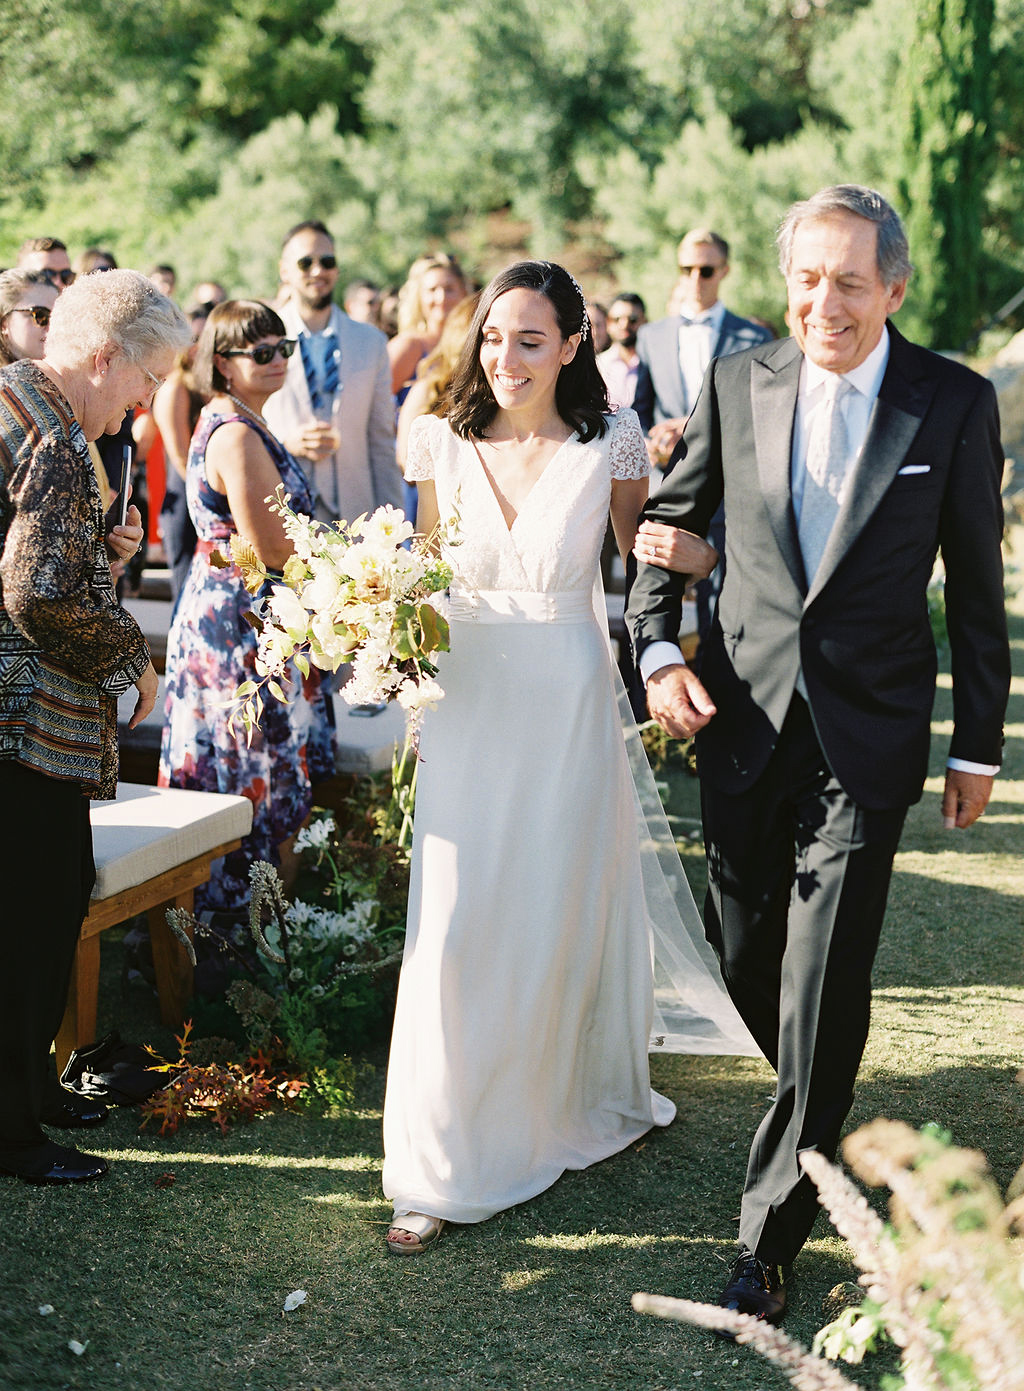 becca joey wedding bride father processional